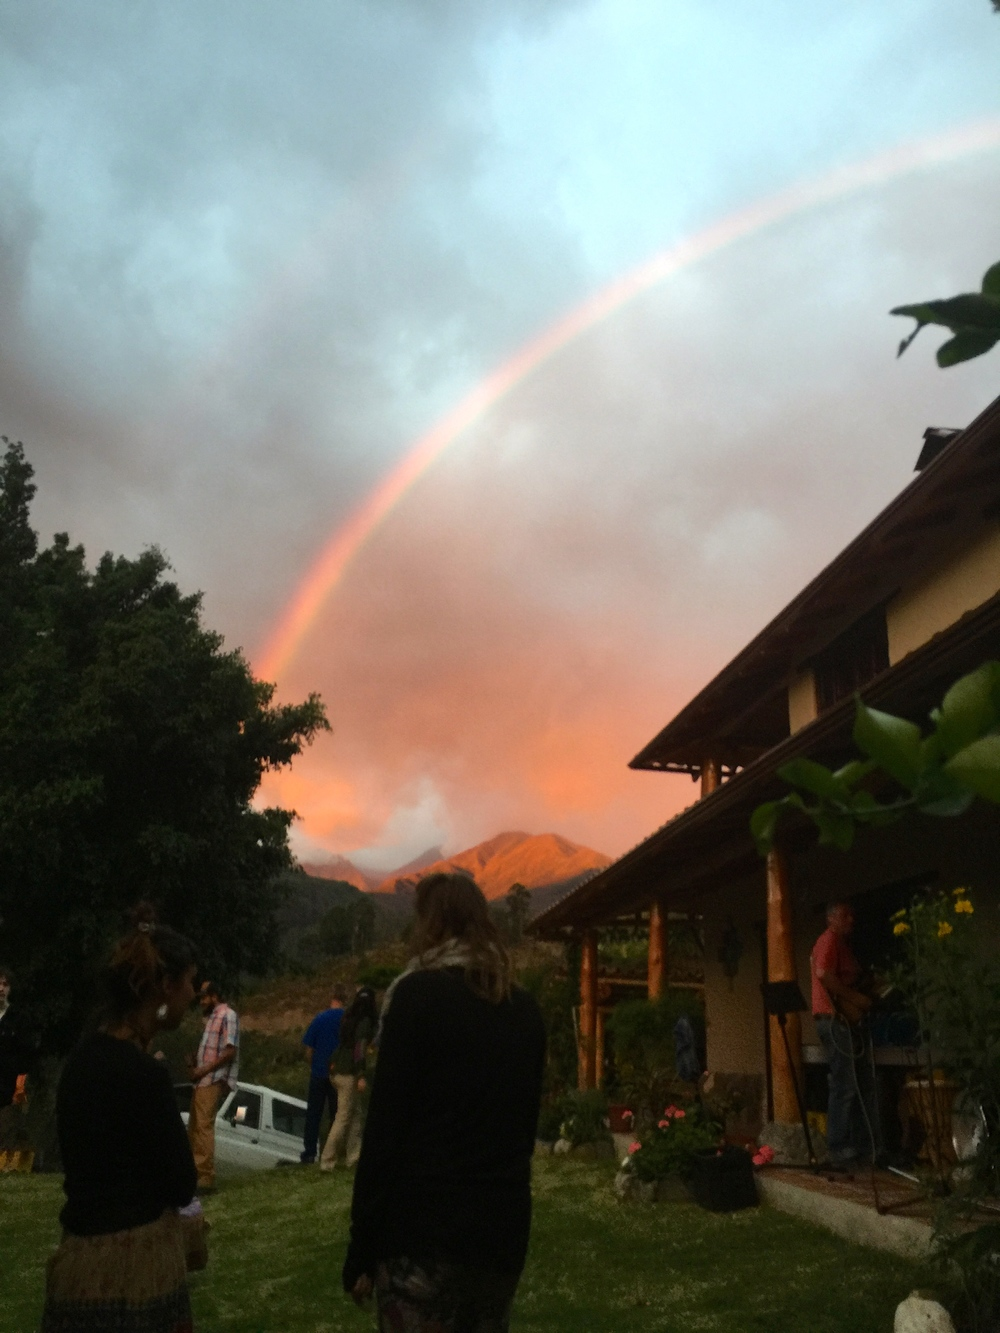 And to add a dose of magic, a rainbow appeared during the party.